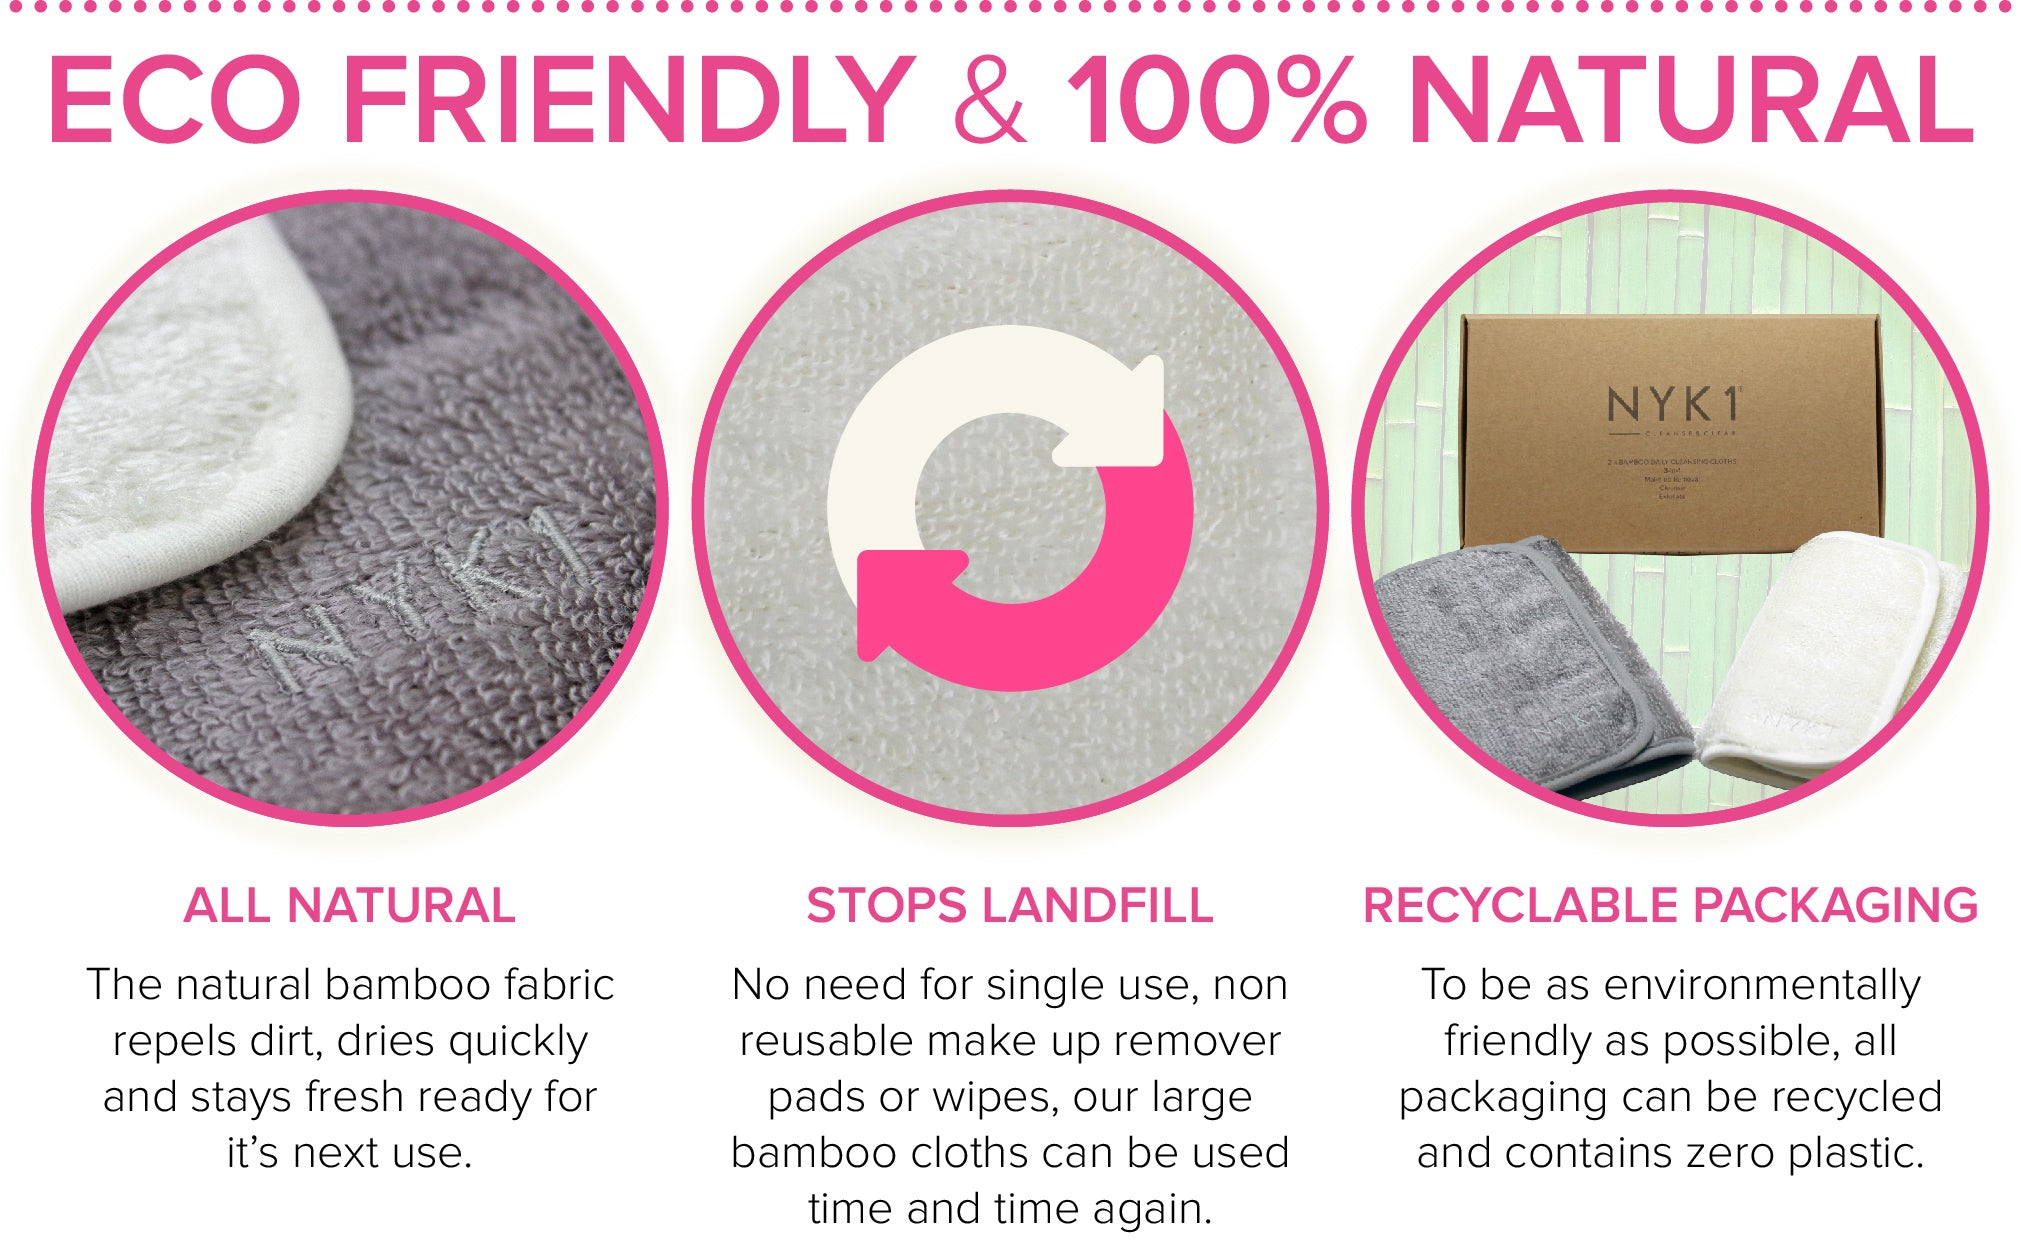 Easy To Keep Fresh & Clean - Face Cloth Towel made from natural Bamboo for makeup including mascara removal